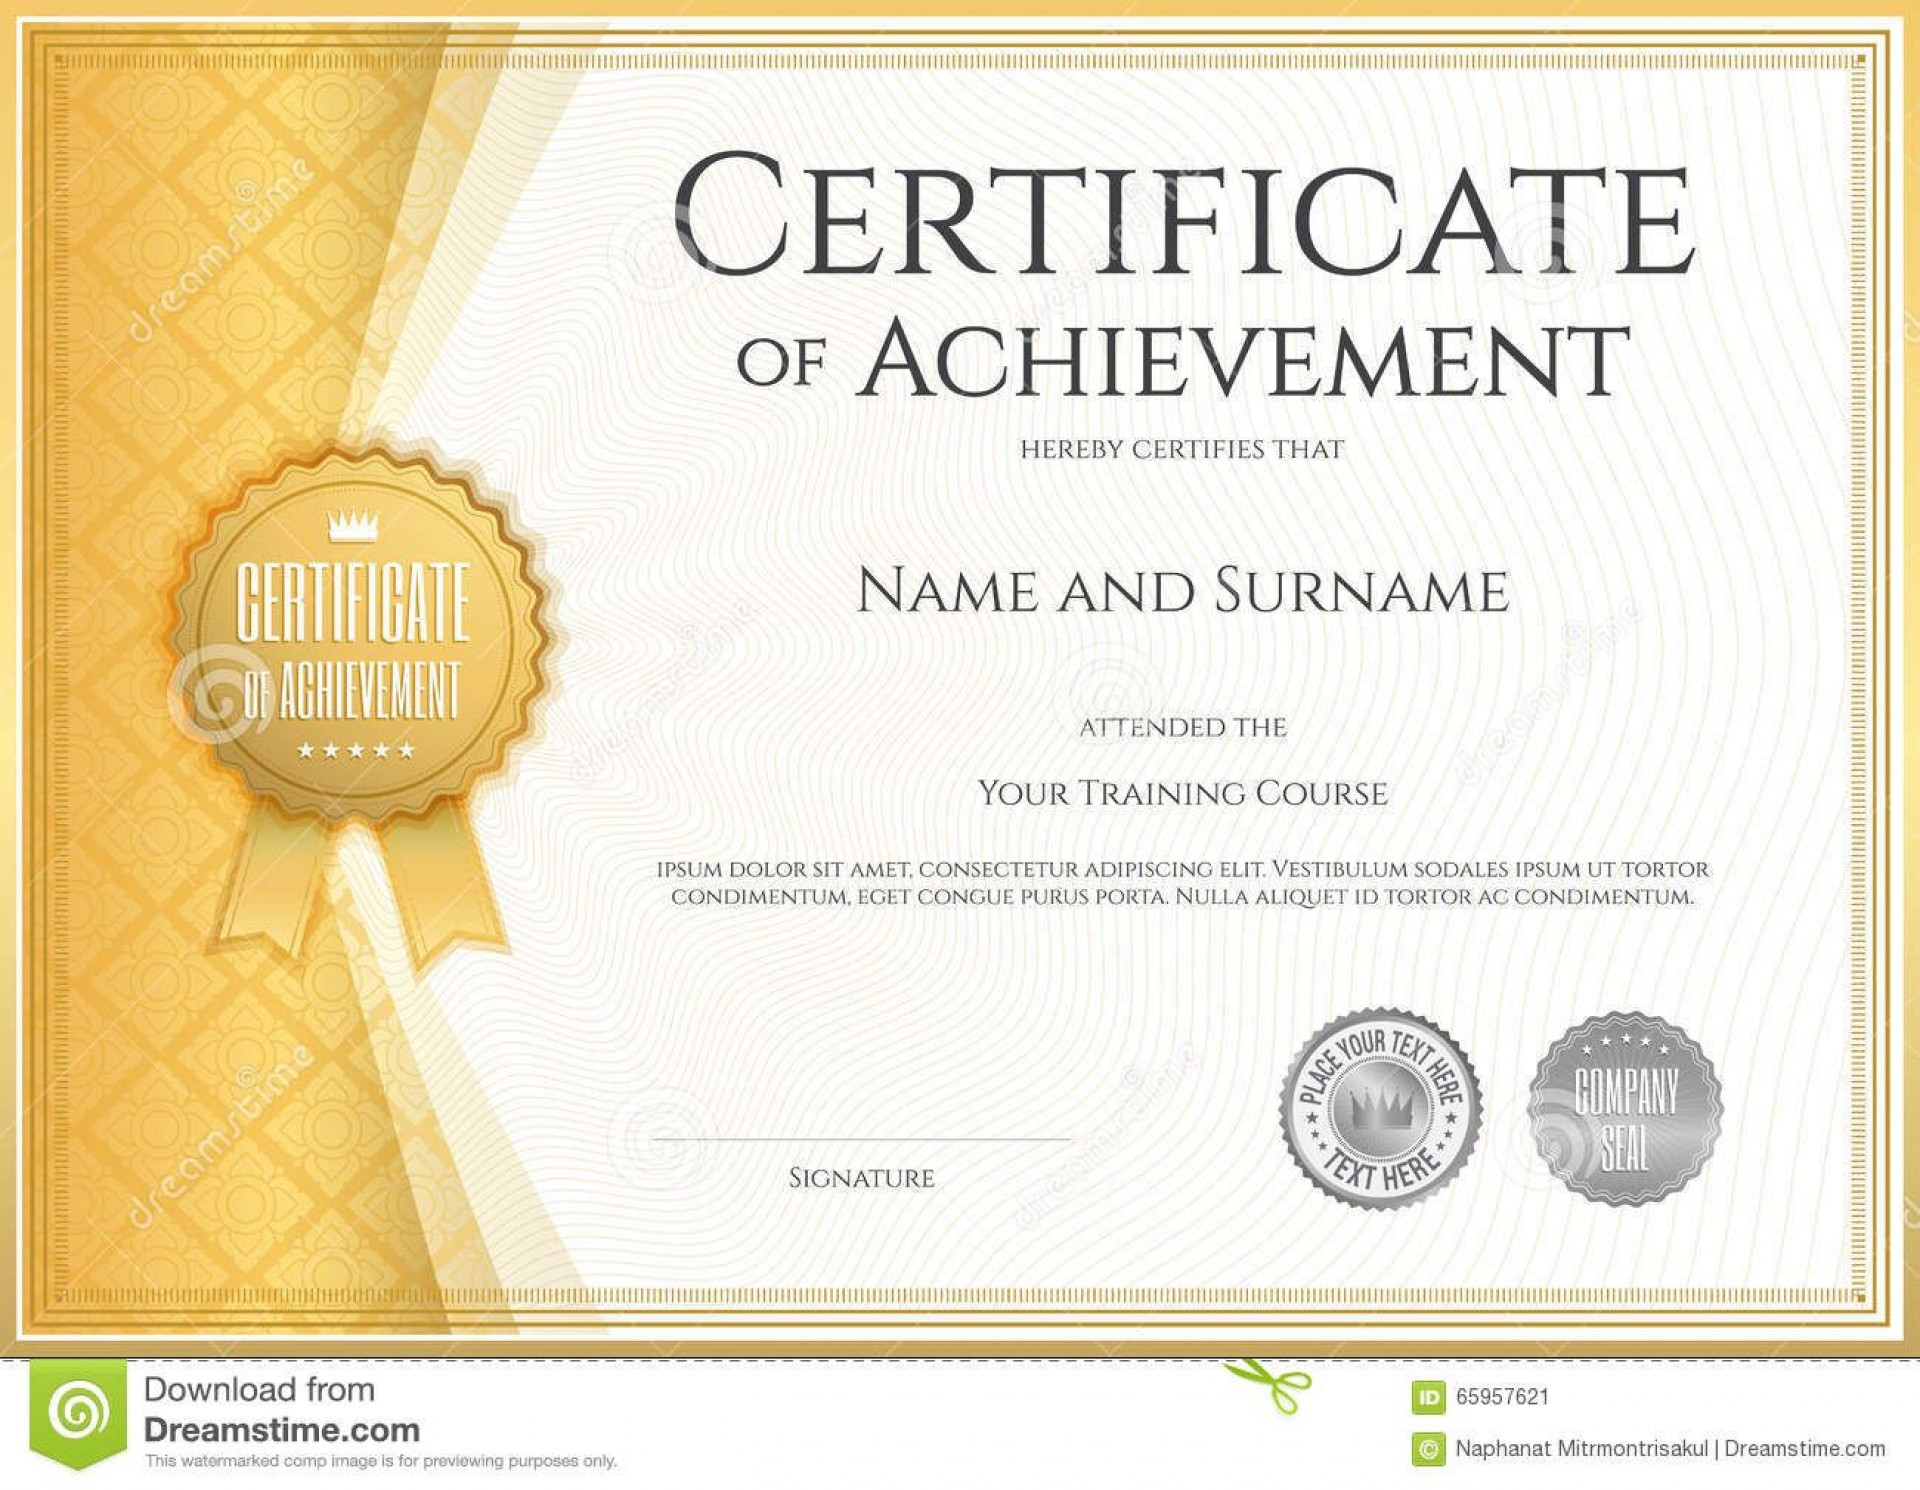 004 Astounding Certificate Of Achievement Template Free Example  Award Download Word1920